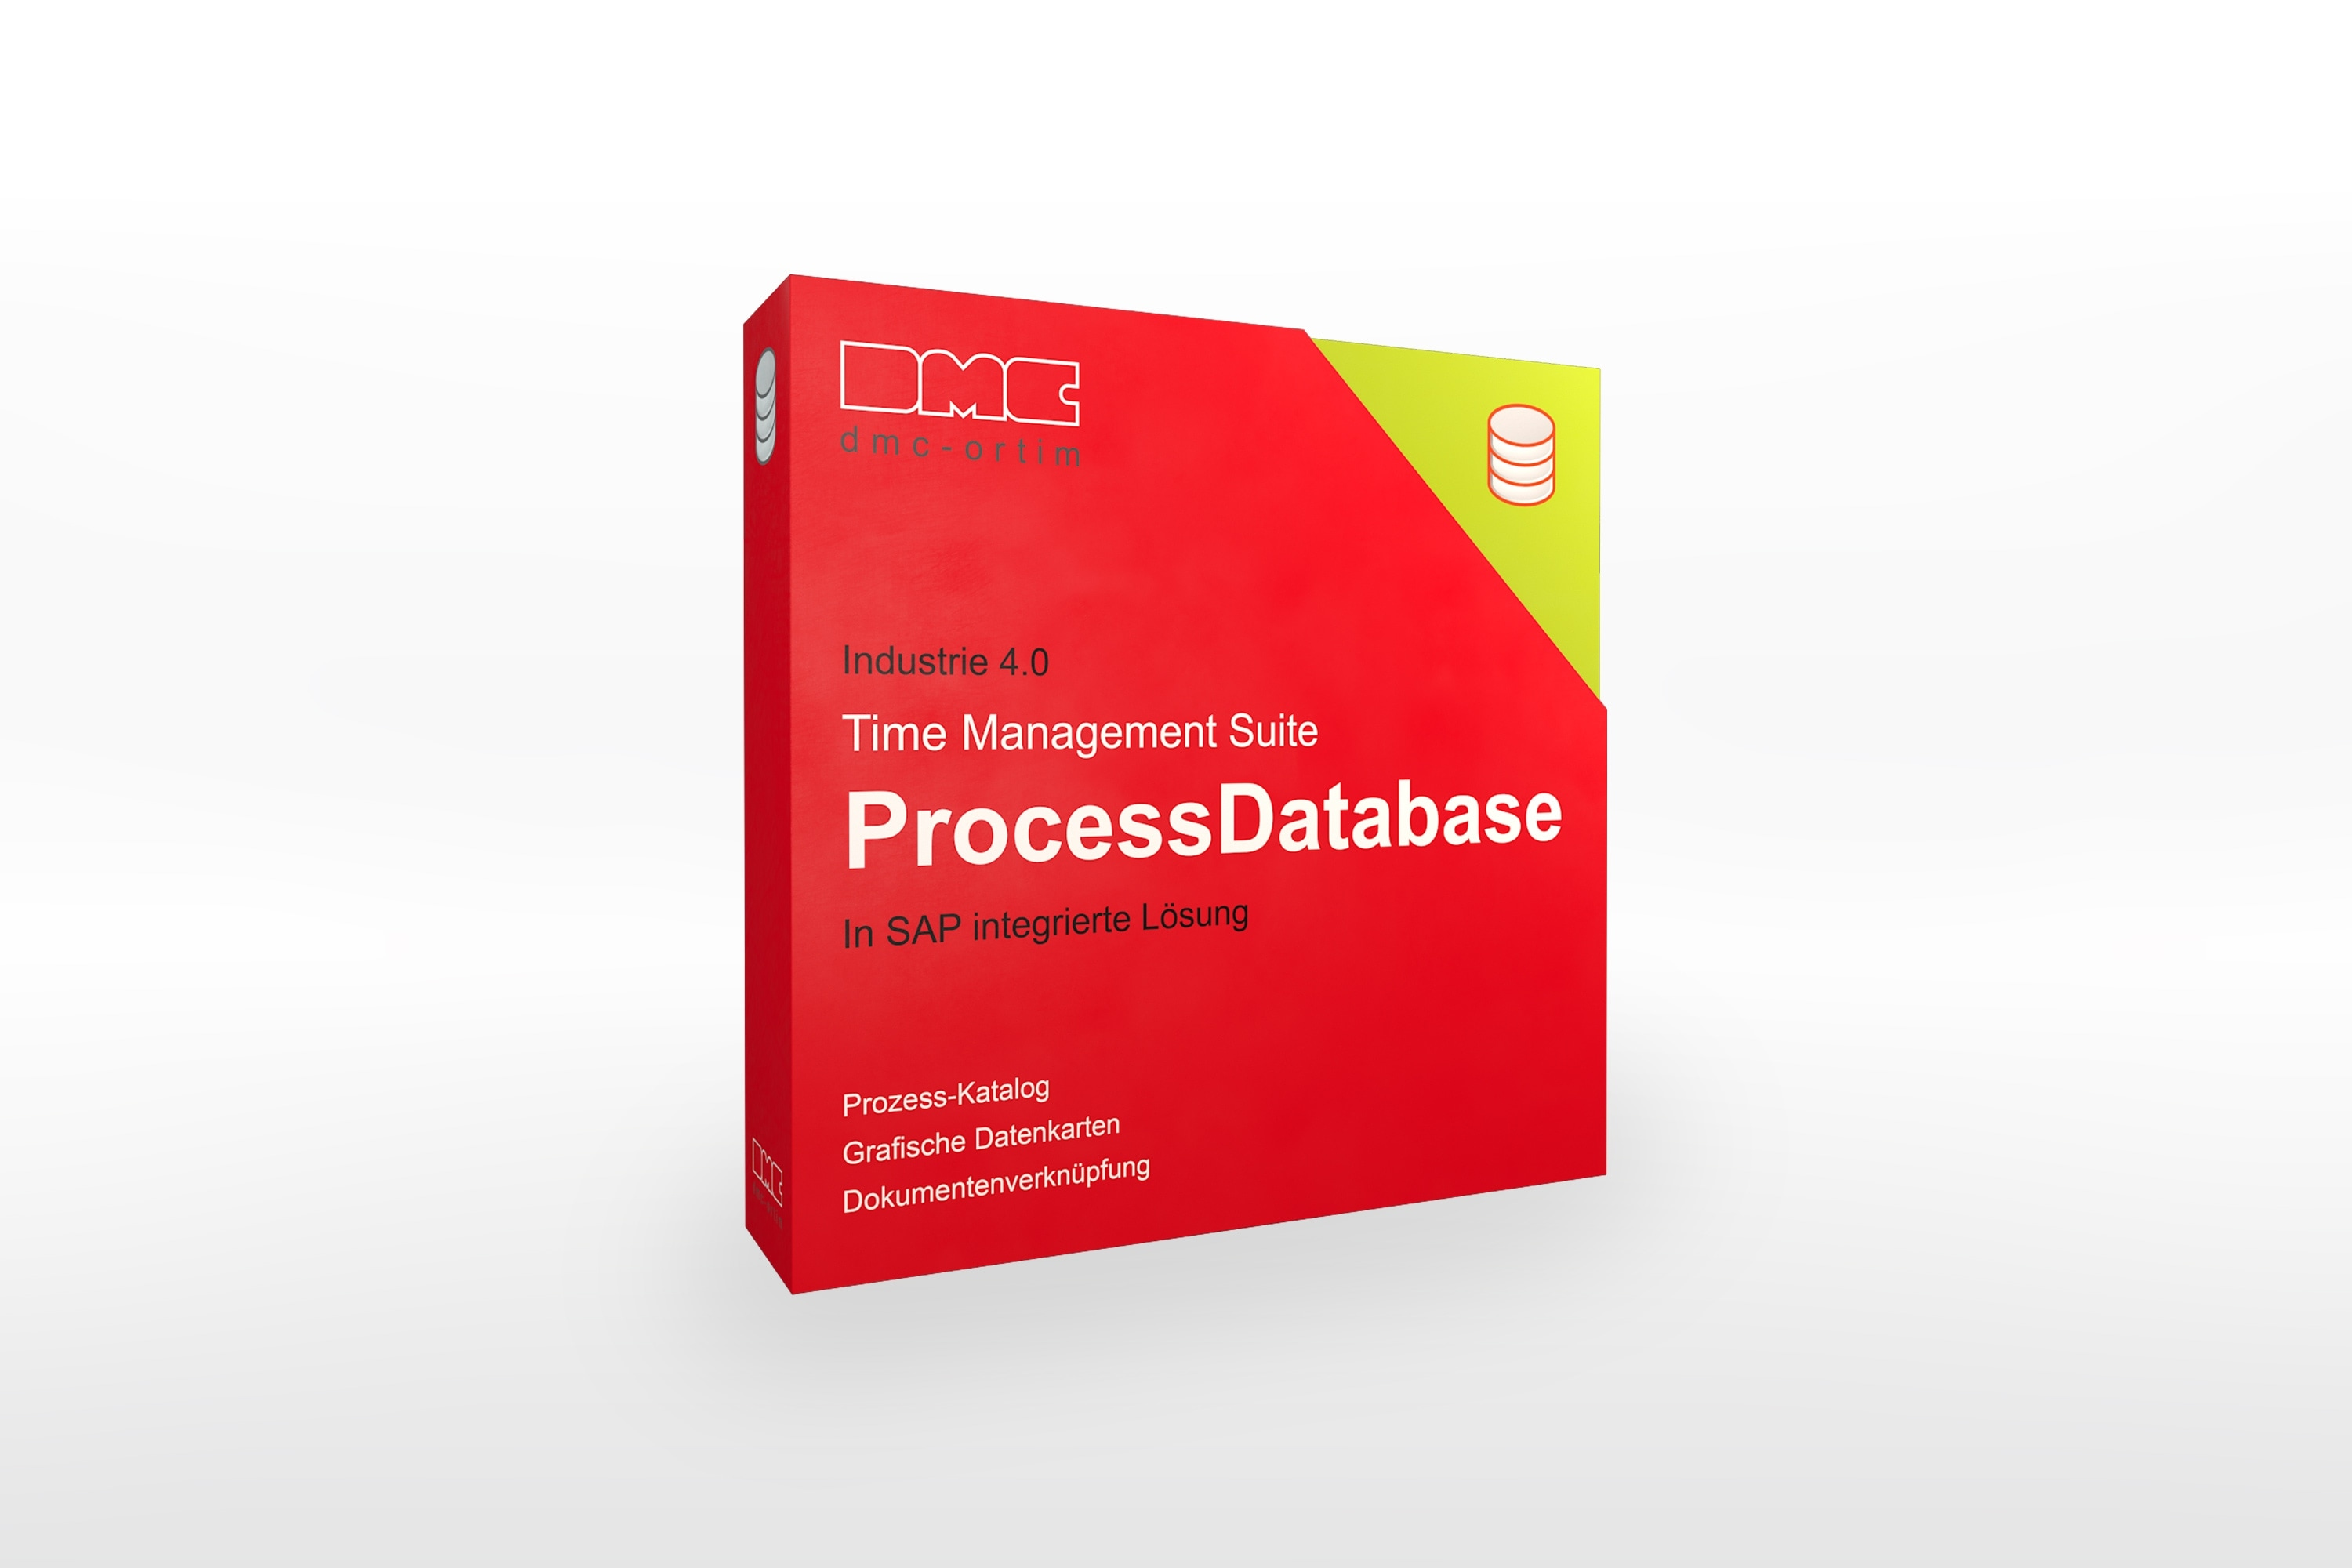 maxfath-dmc-group-muenchen-redesign-packaging-capp-knowledge-process-database